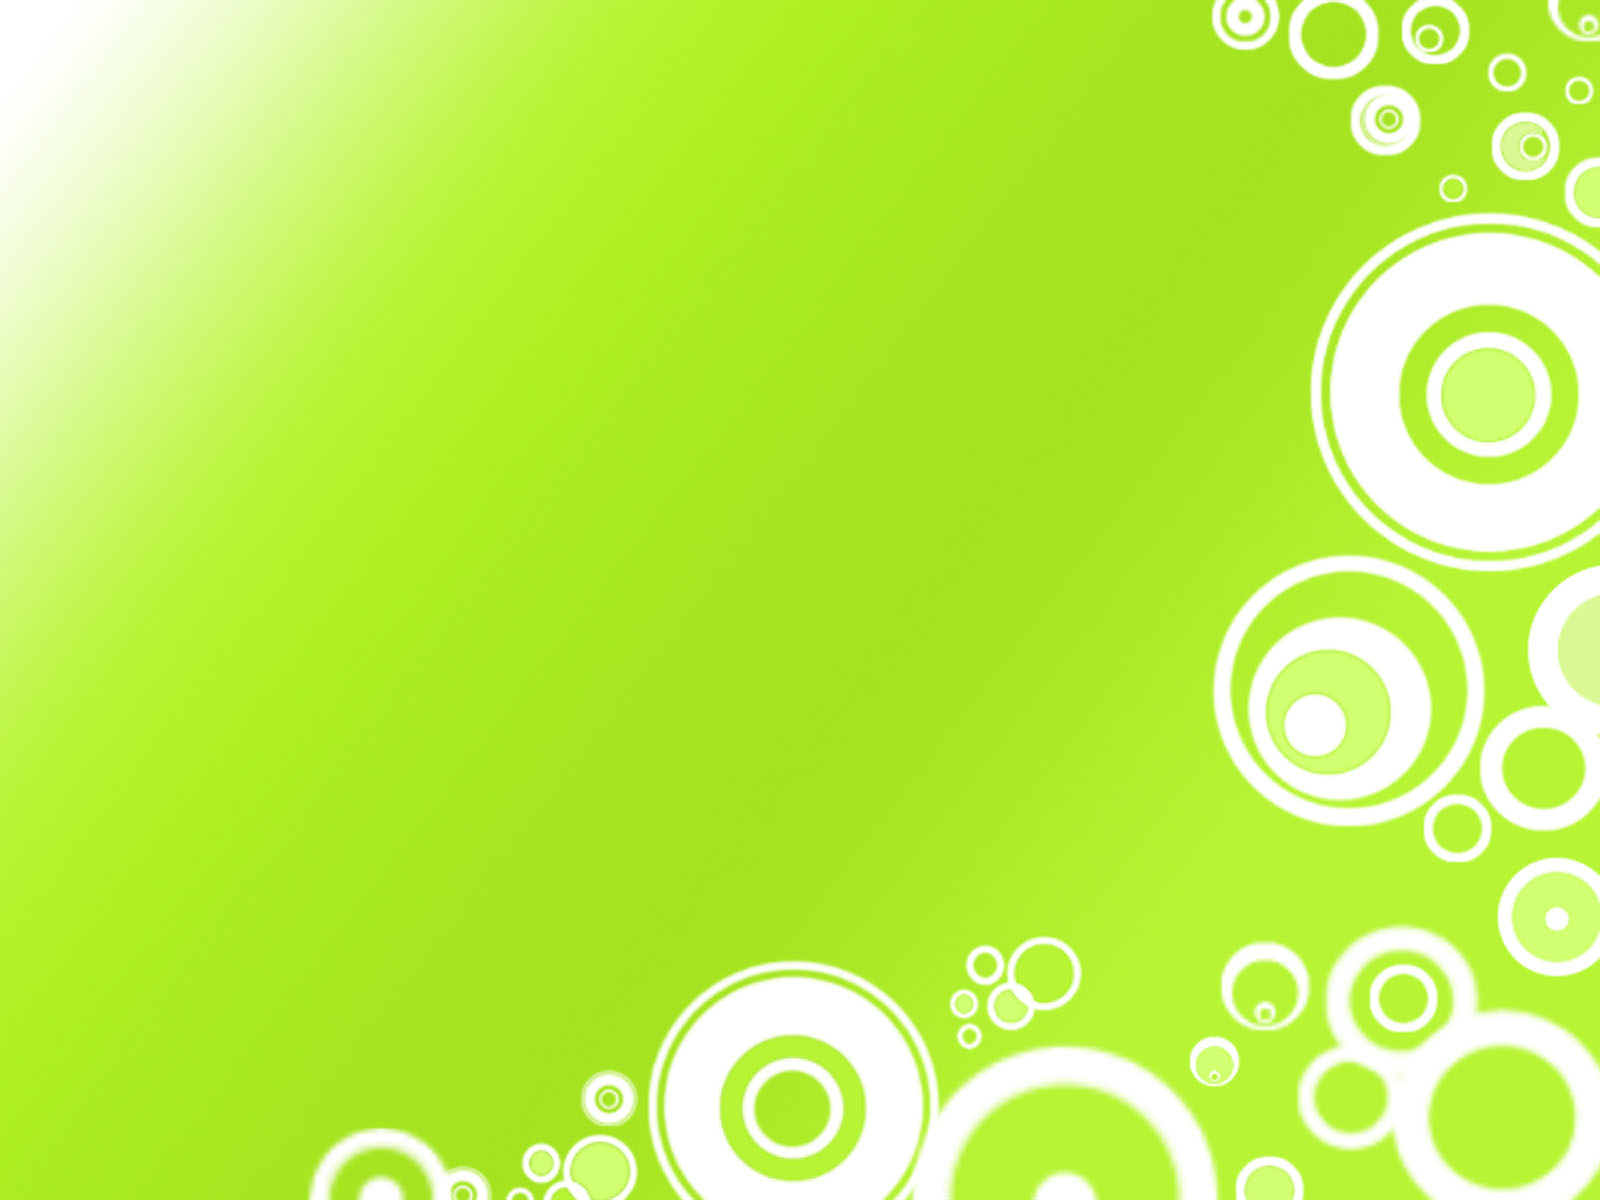 Green Windows Wallpaper Themes